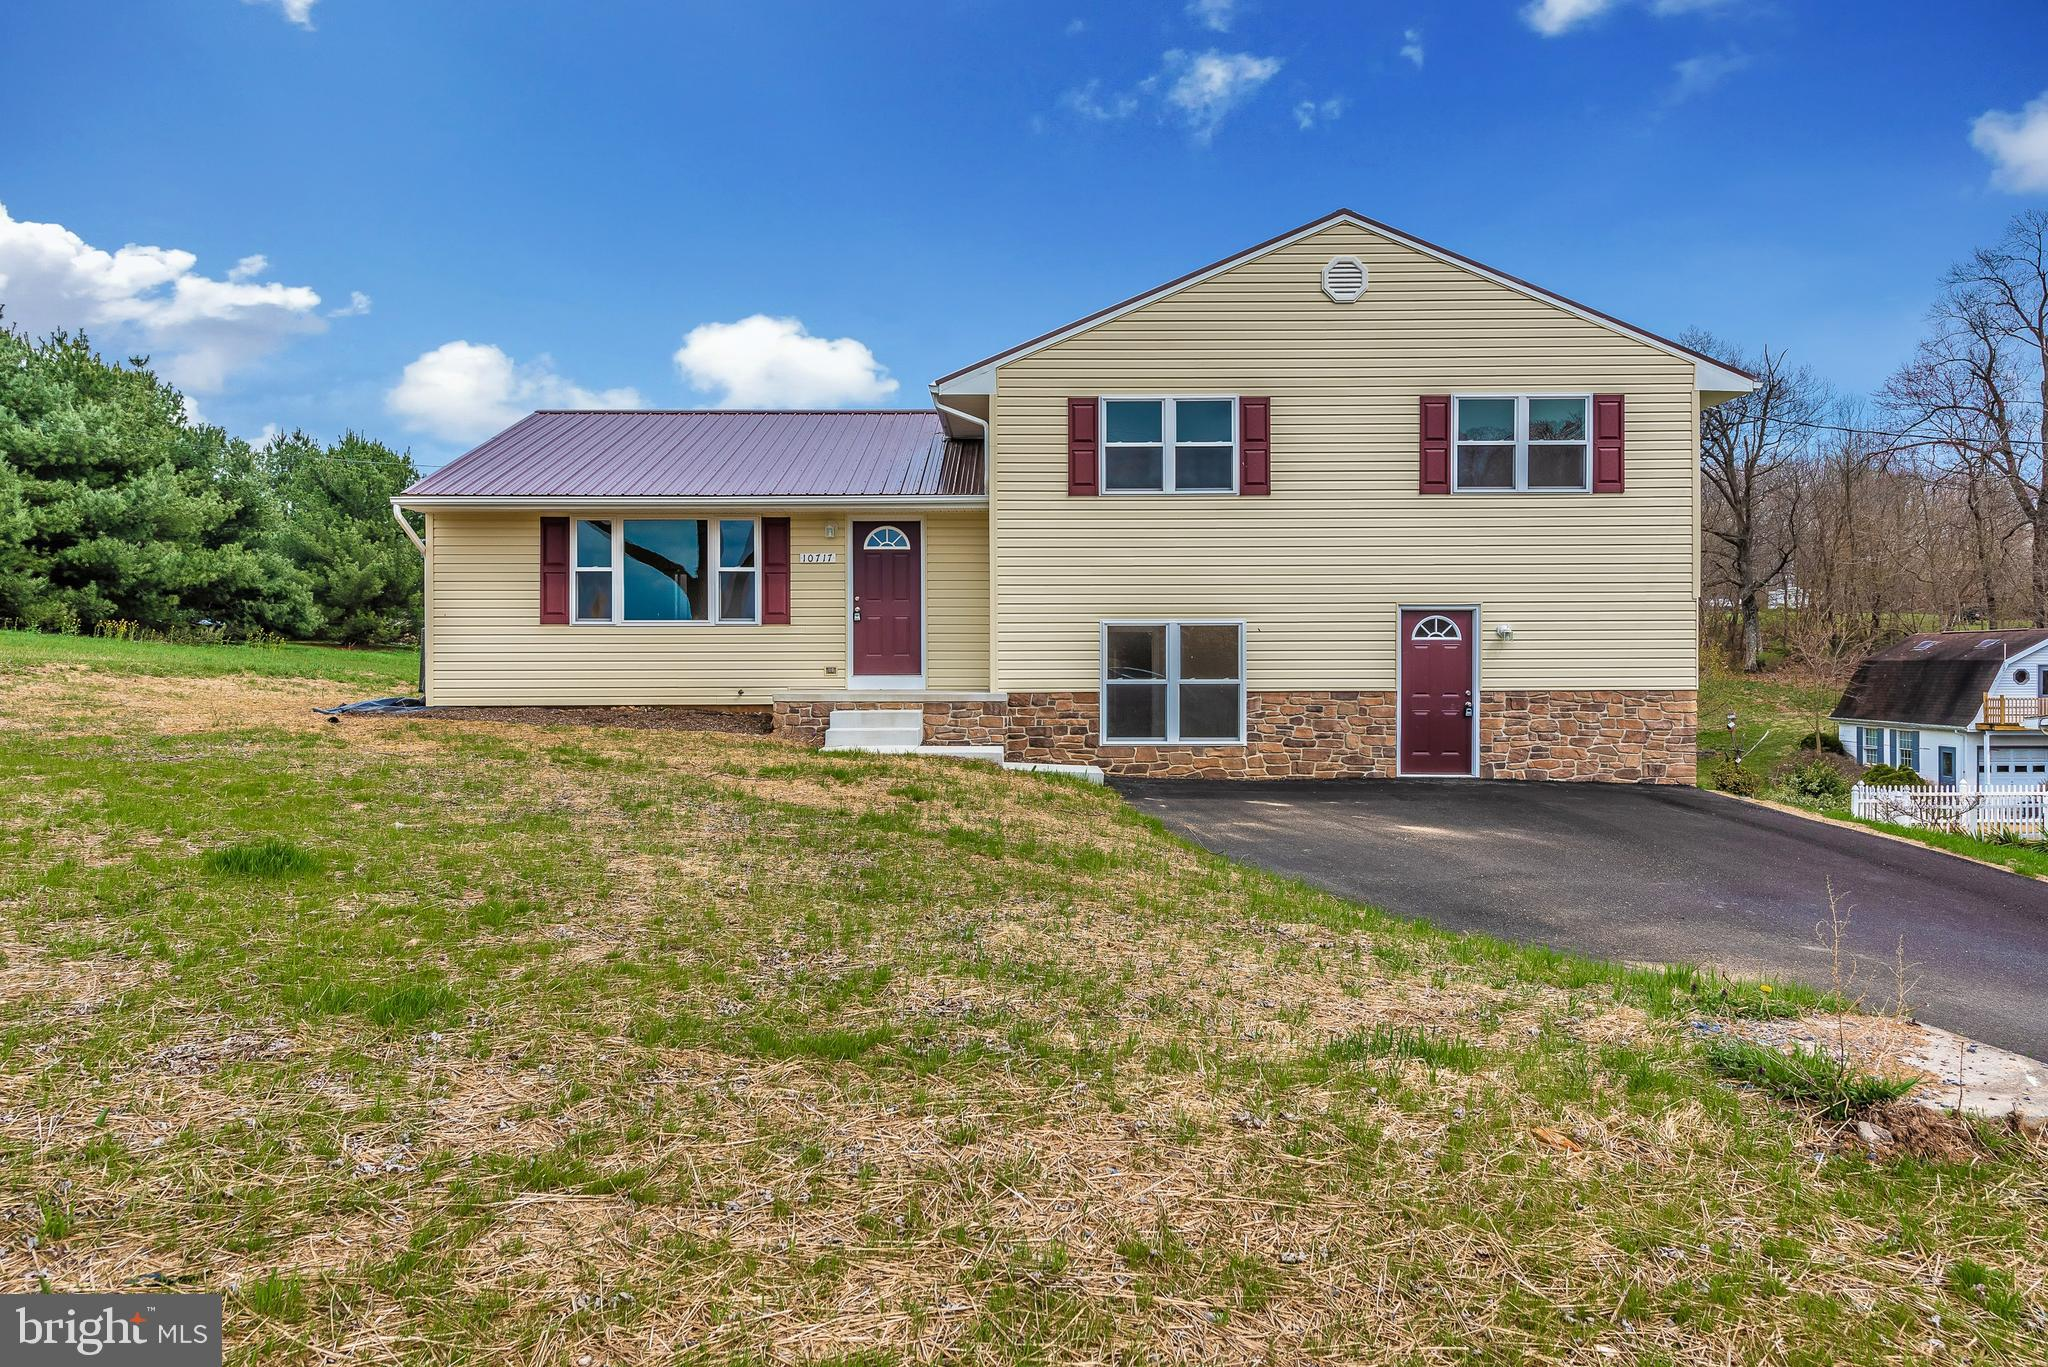 10717 DORCUS ROAD, WOODSBORO, MD 21798